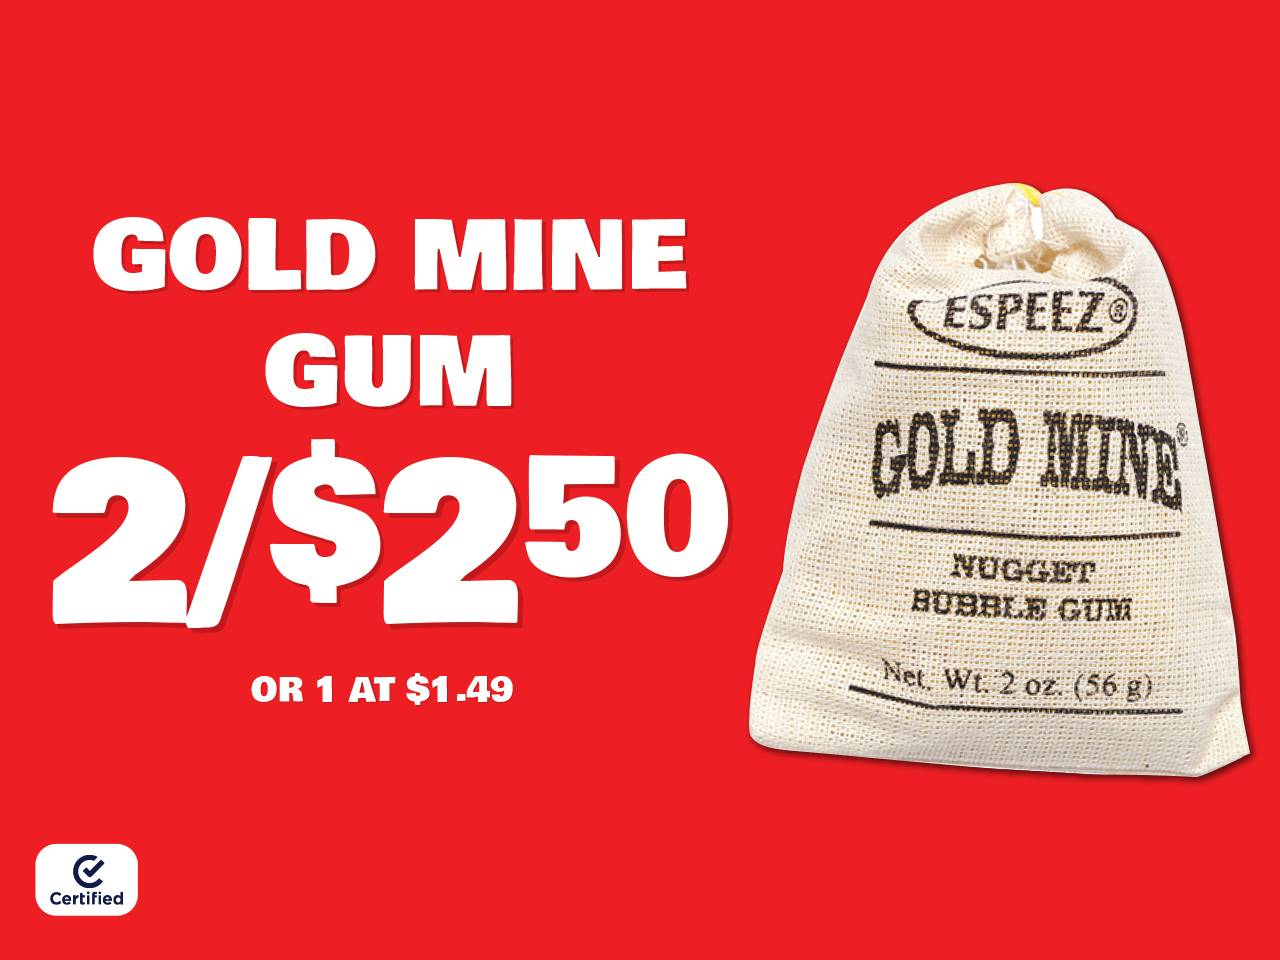 Gold Mine Gum 2 for $2.50 or 1 at $1.49